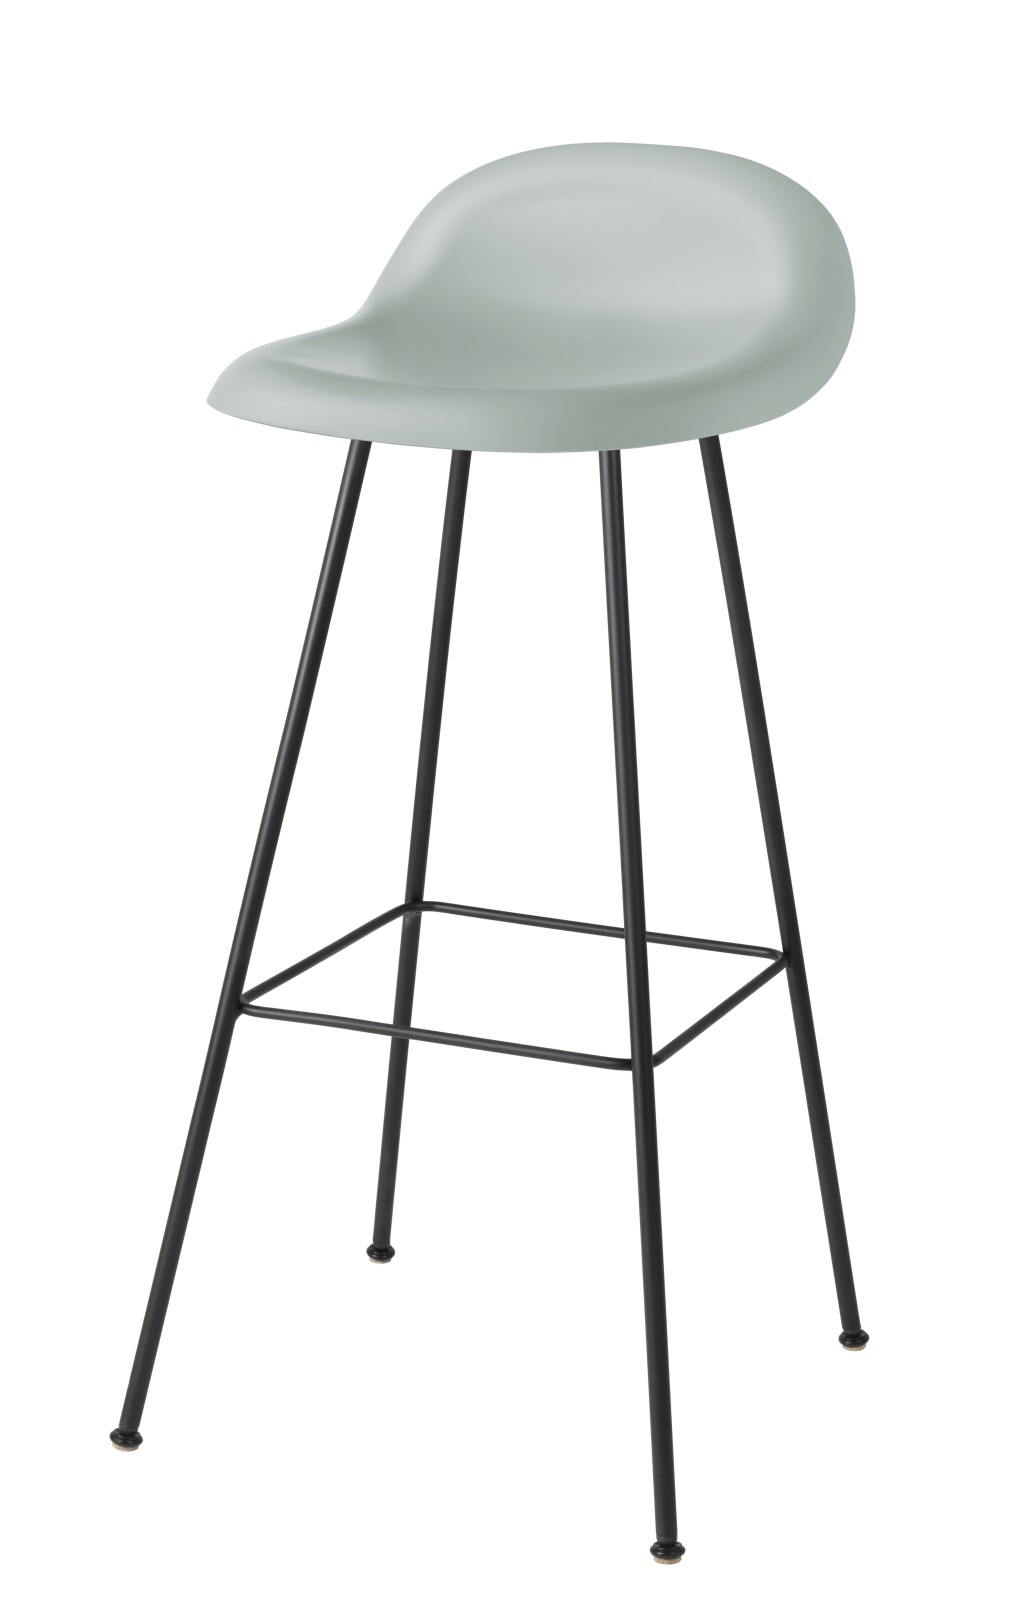 Gubi 3D Bar Stool Center Base - Unupholstered Gubi HiRek Moon Grey